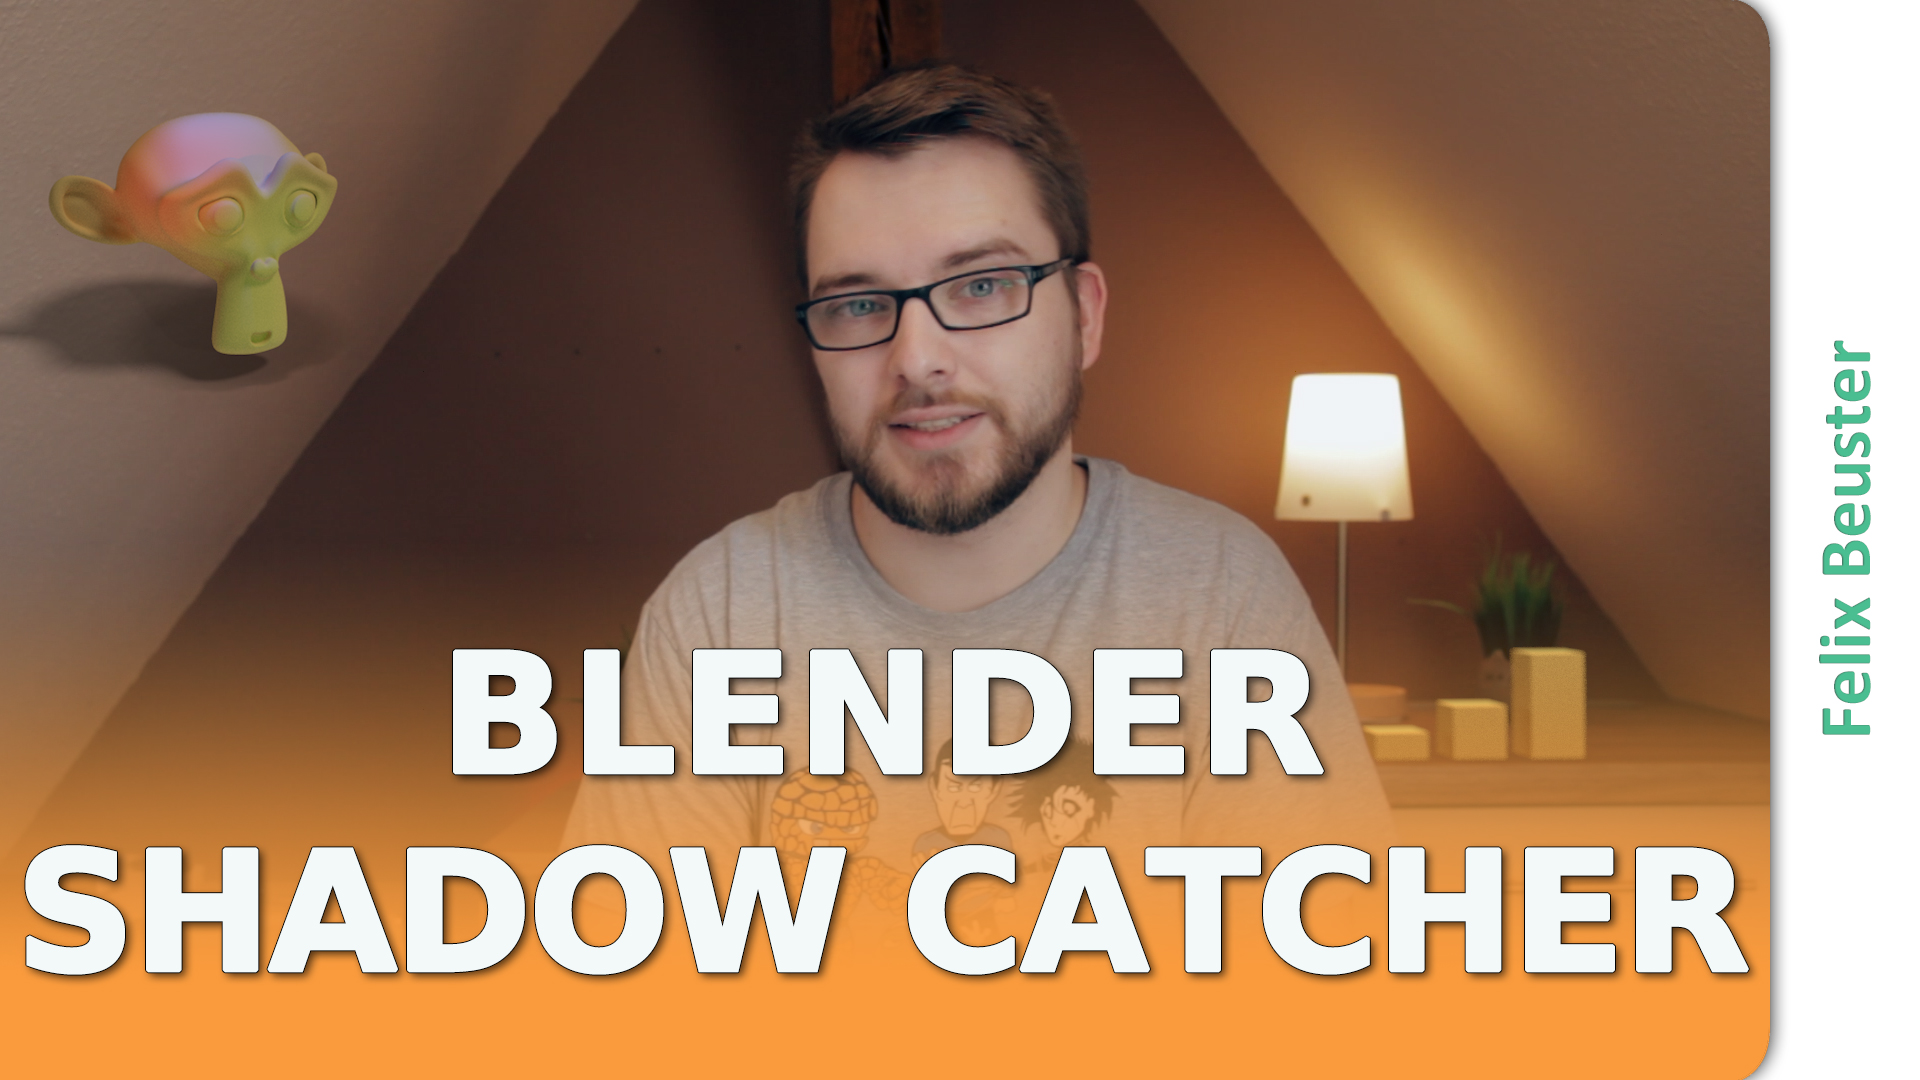 blender_shadow_catcher.jpg